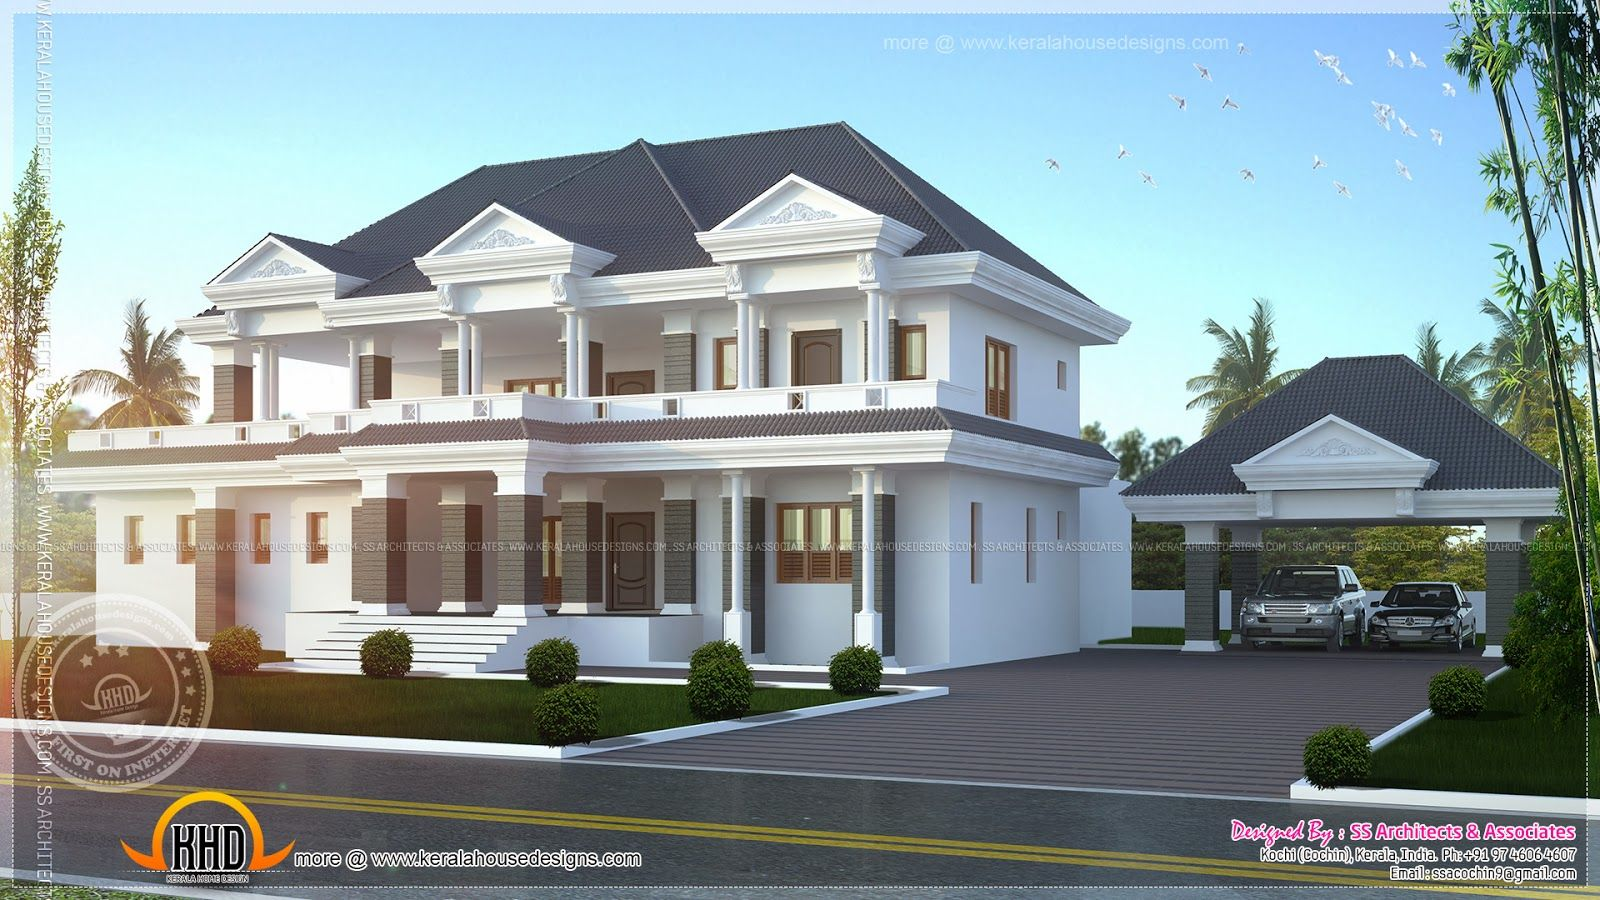 Luxury house plans posh luxury home plan audisb luxury for New luxury home plans